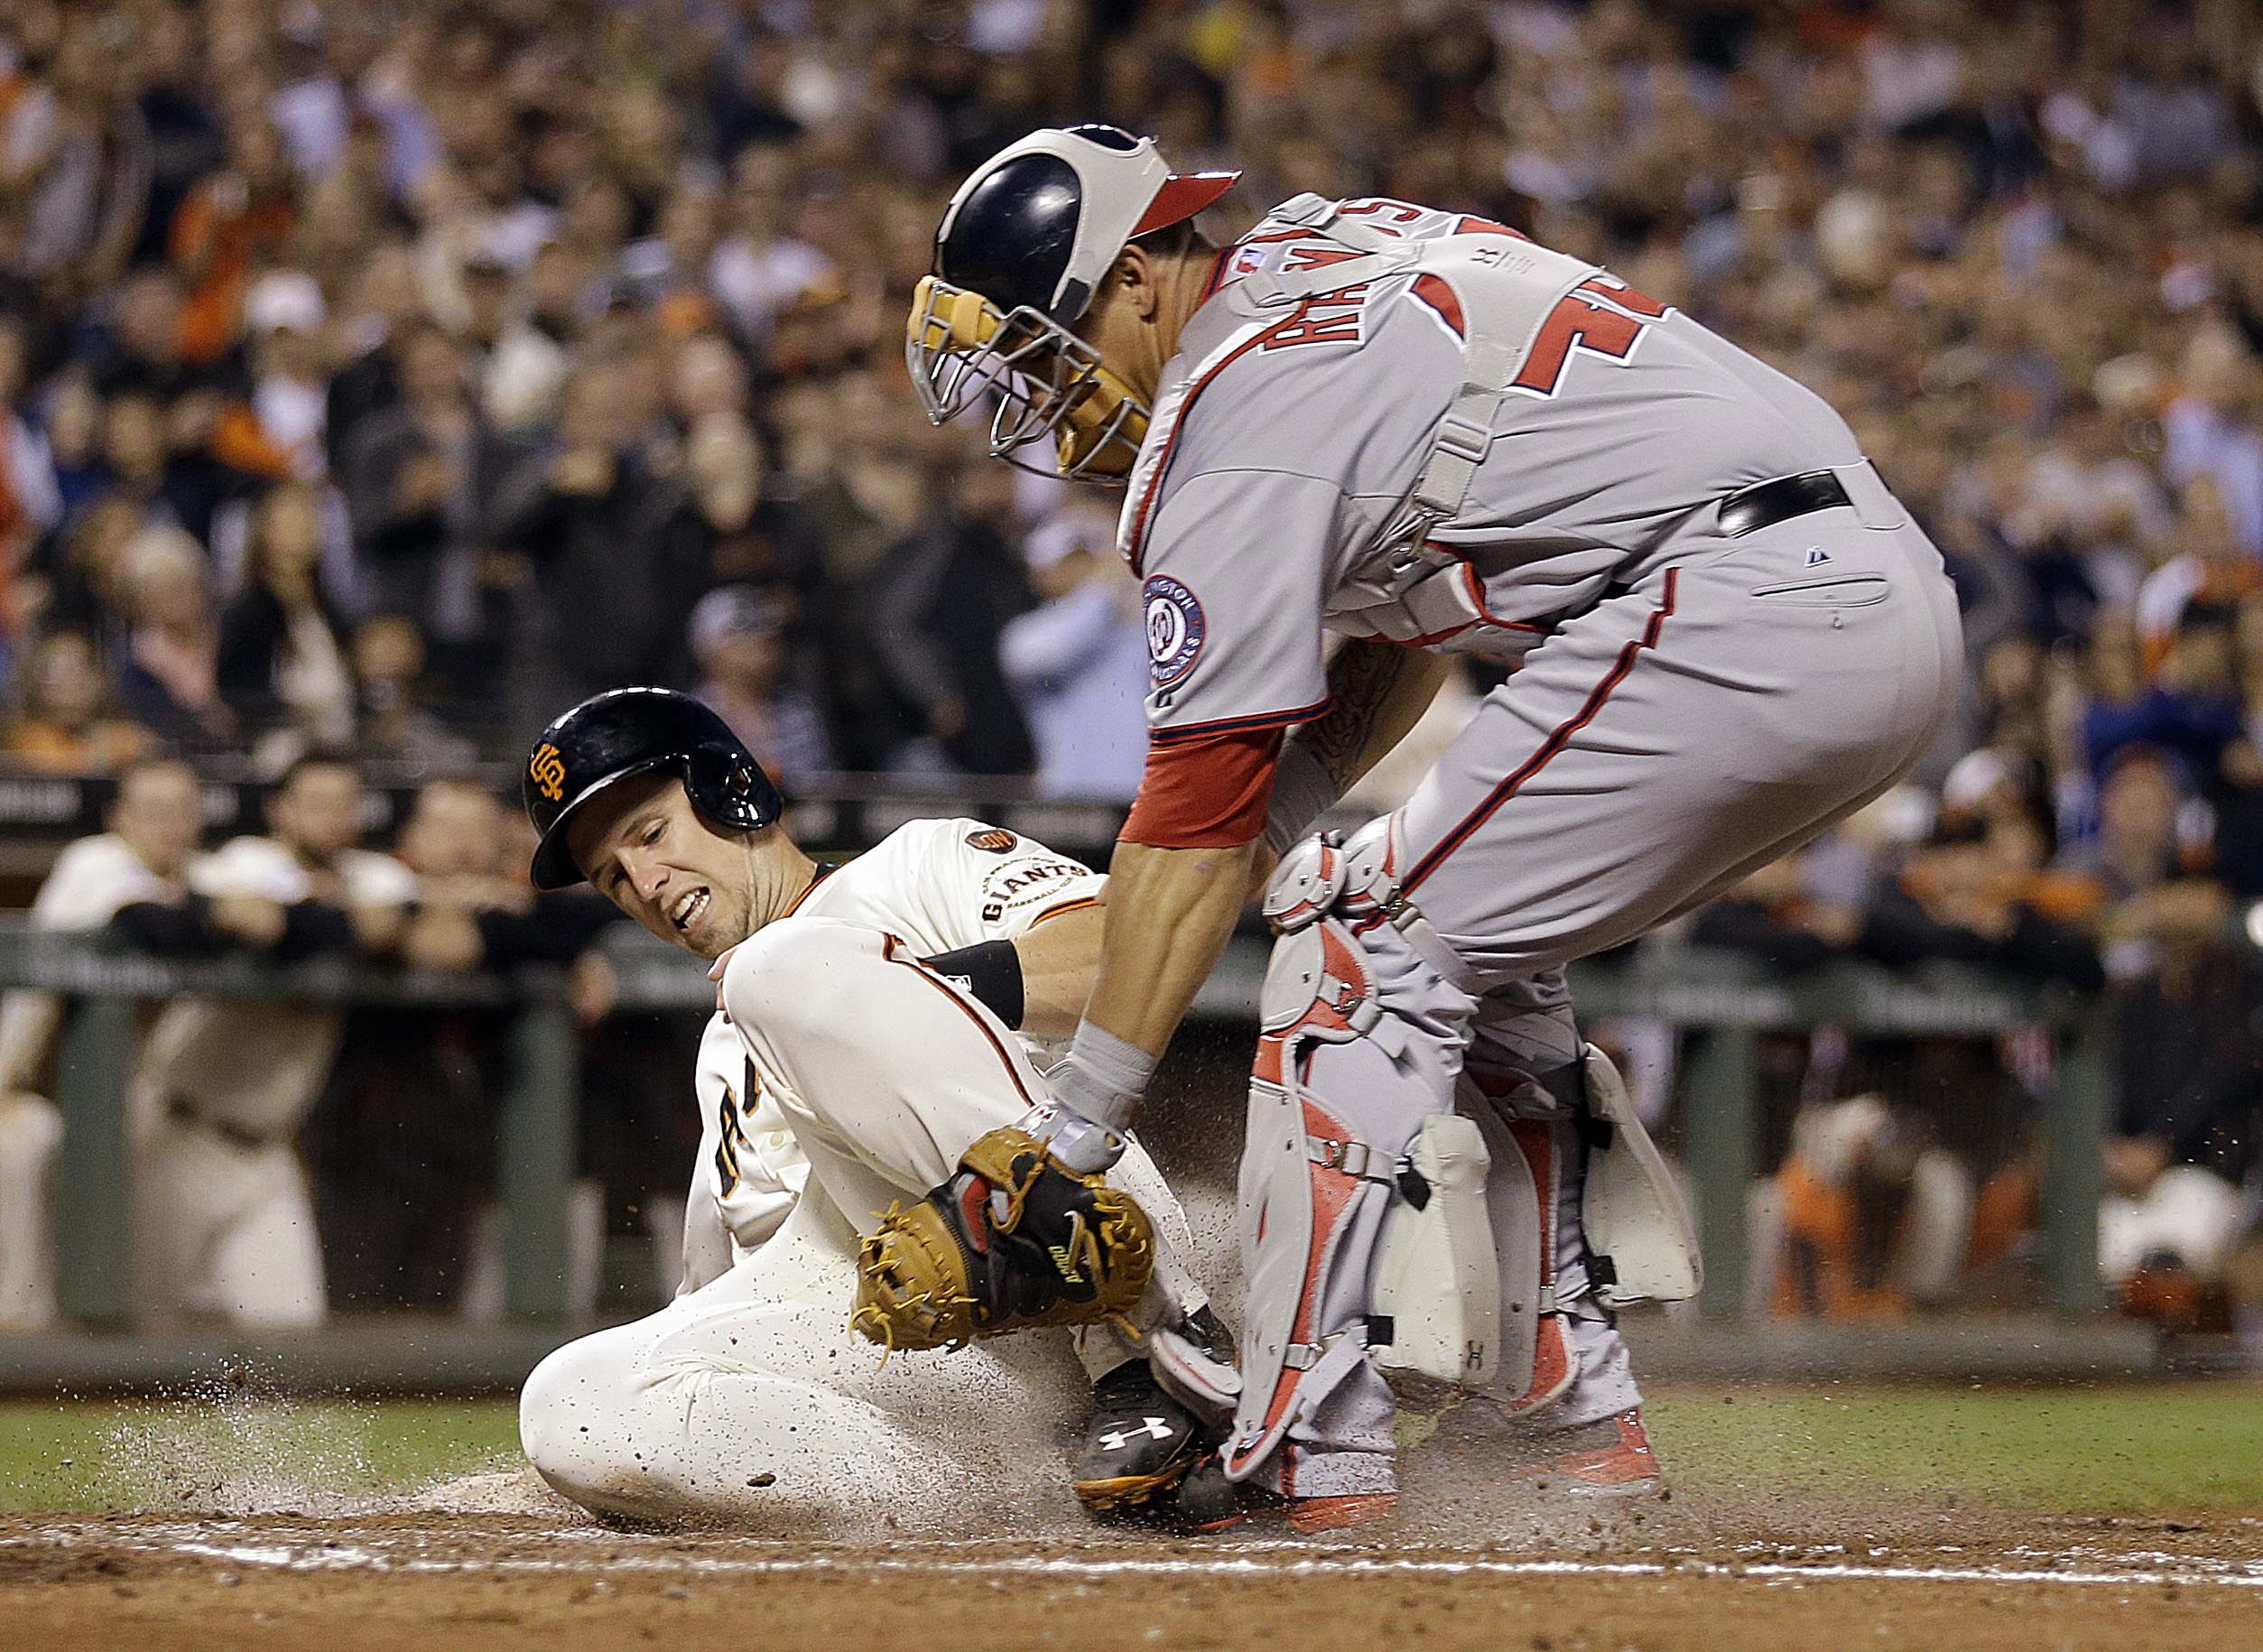 Washington Nationals catcher Wilson Ramos, right, tags out San Francisco Giants' Buster Posey at home plate in the third inning of a baseball game Thursday, Aug. 13, 2015, in San Francisco. Posey was trying to score on a hit by Giants' Hunter Pence. (AP P